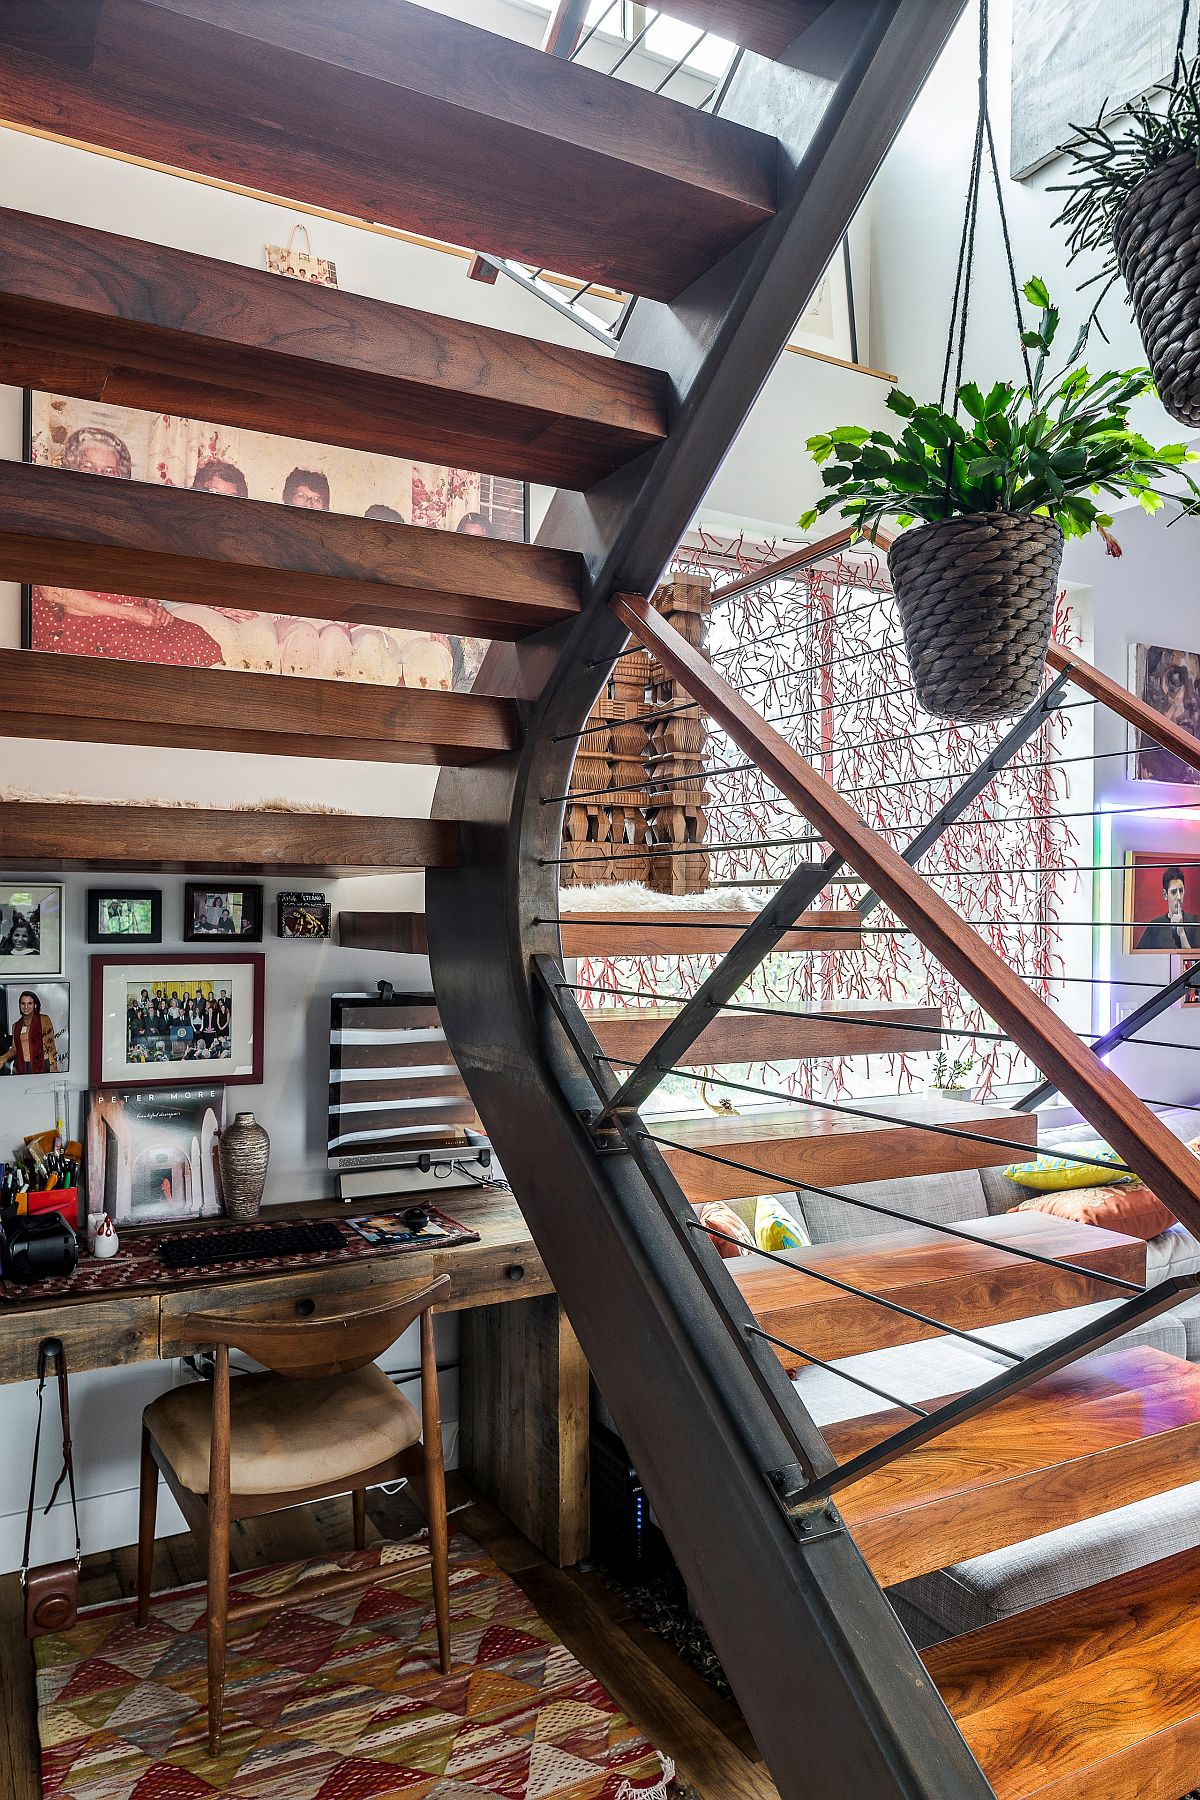 Small eclectic workspace under the staircase crafted using a simple wooden desk